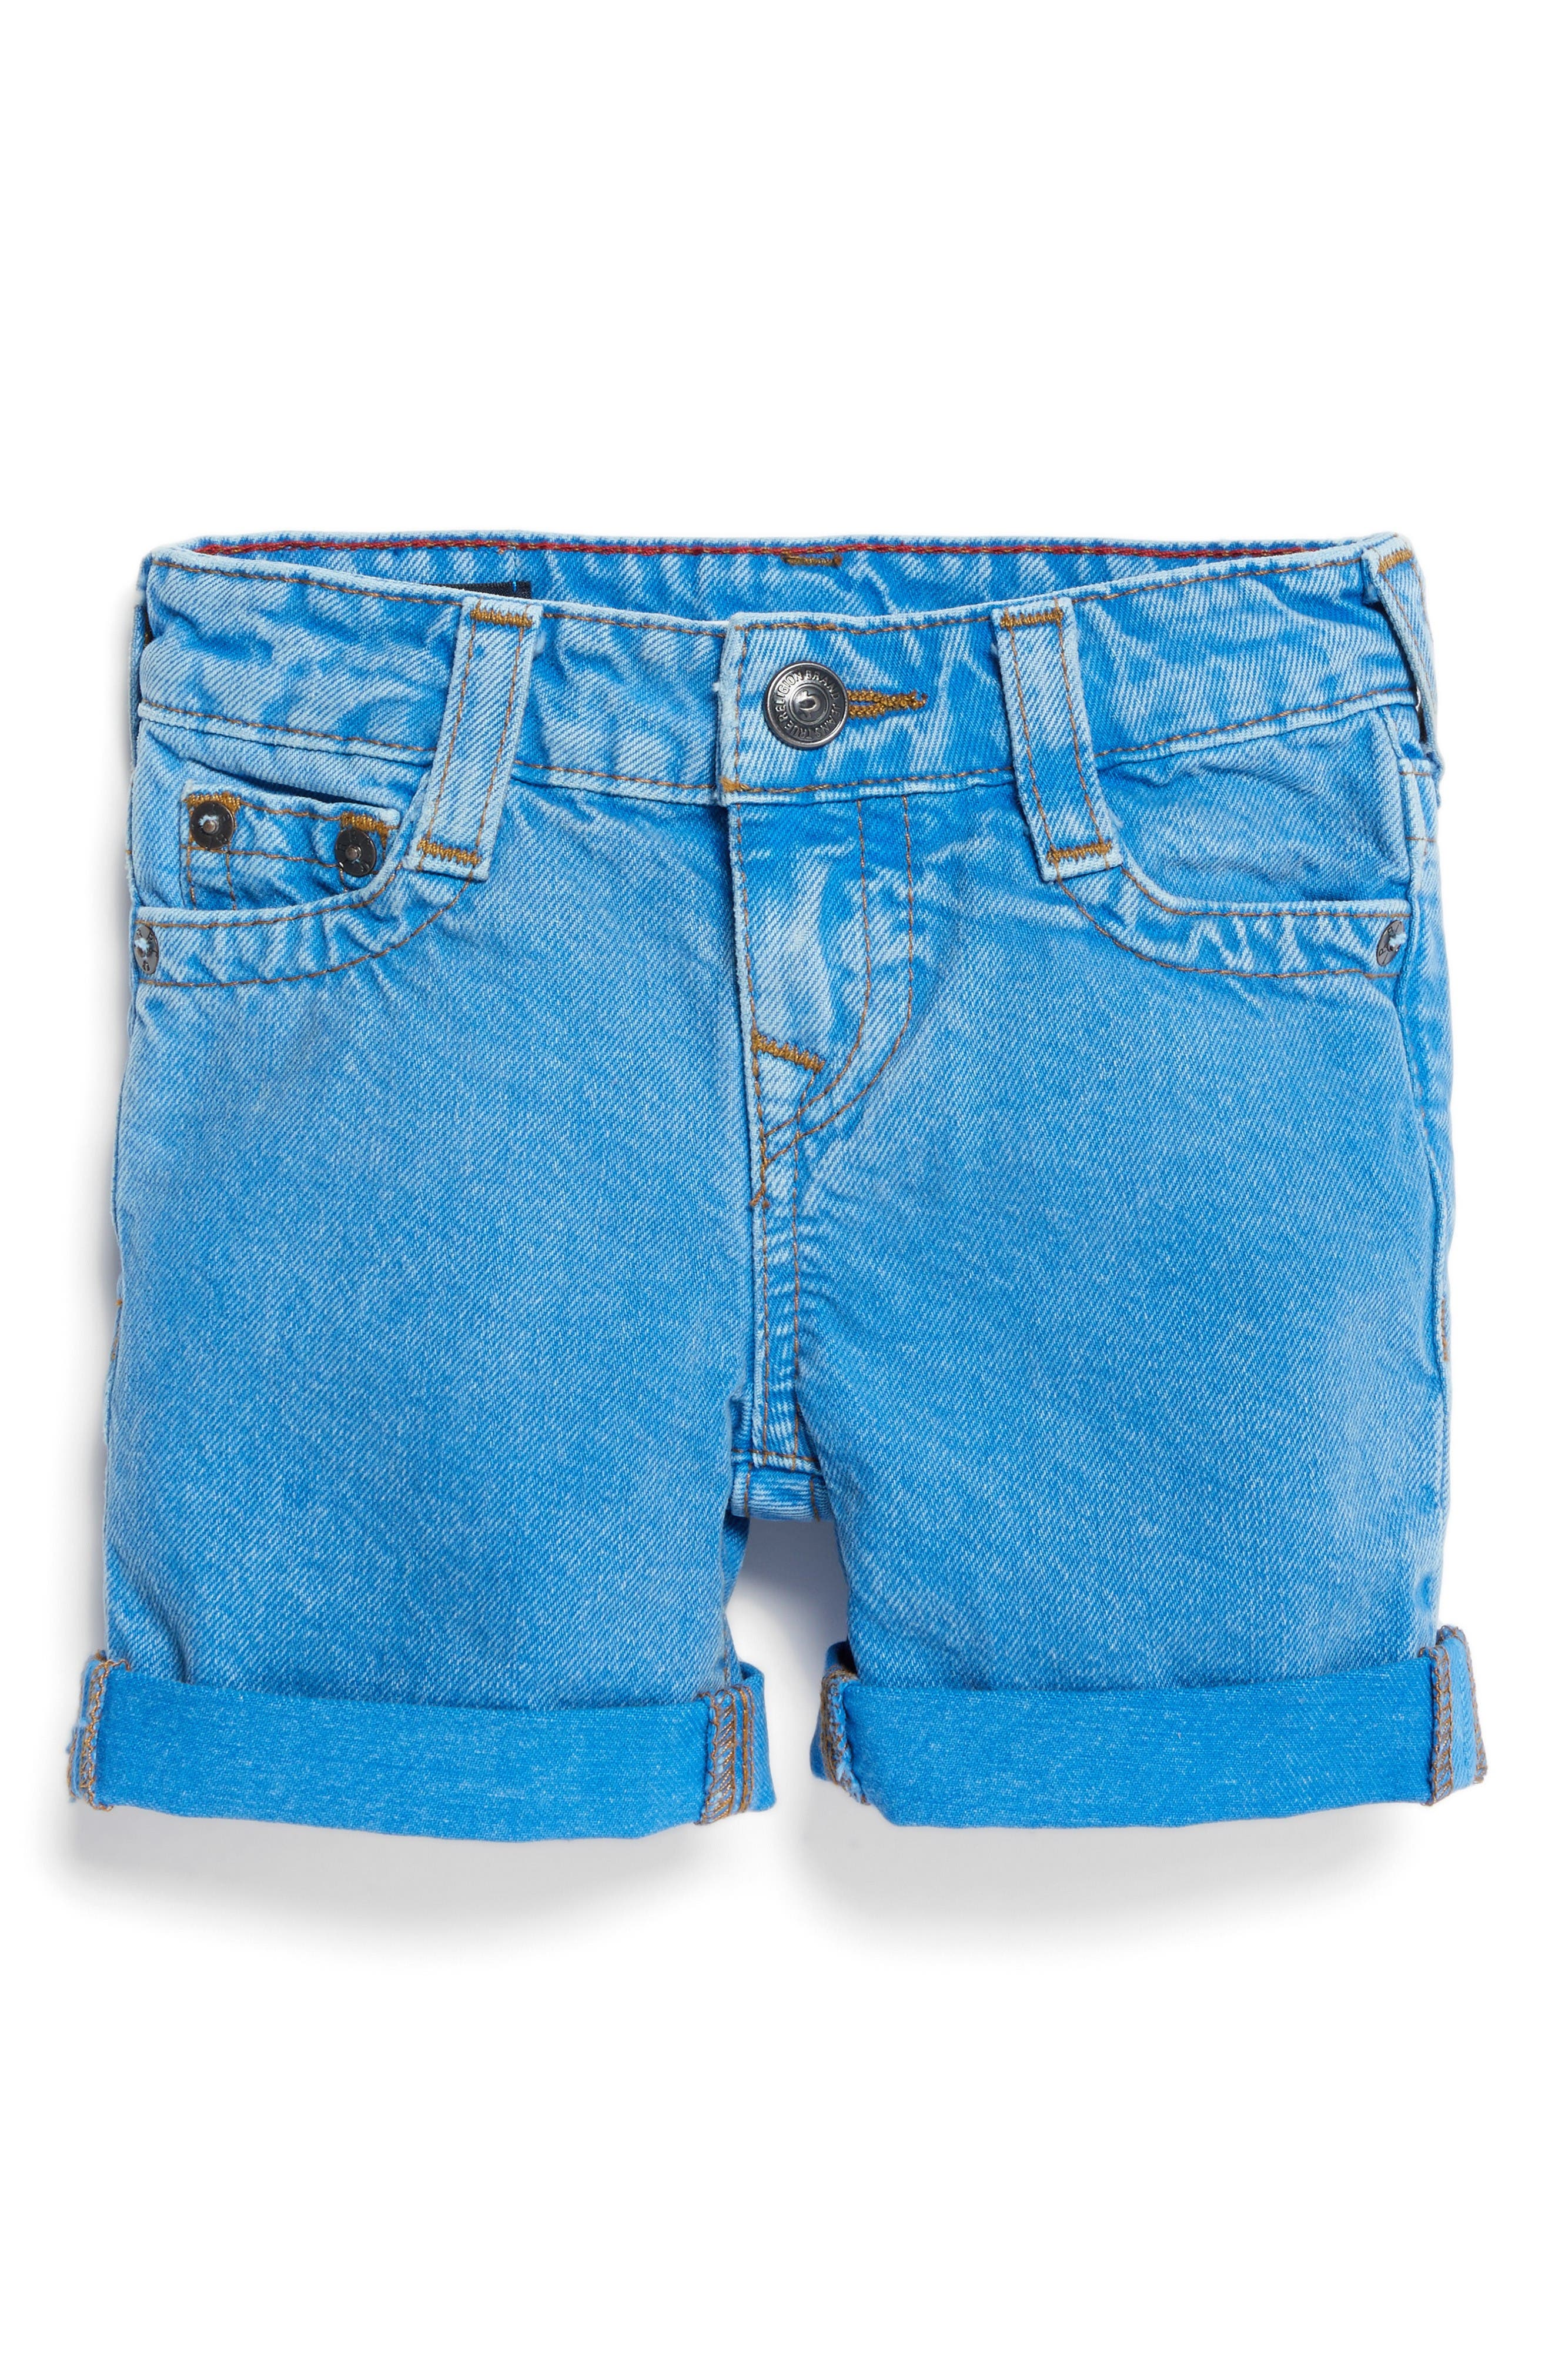 True Religion Geno Denim Shorts,                         Main,                         color, Bright Blue